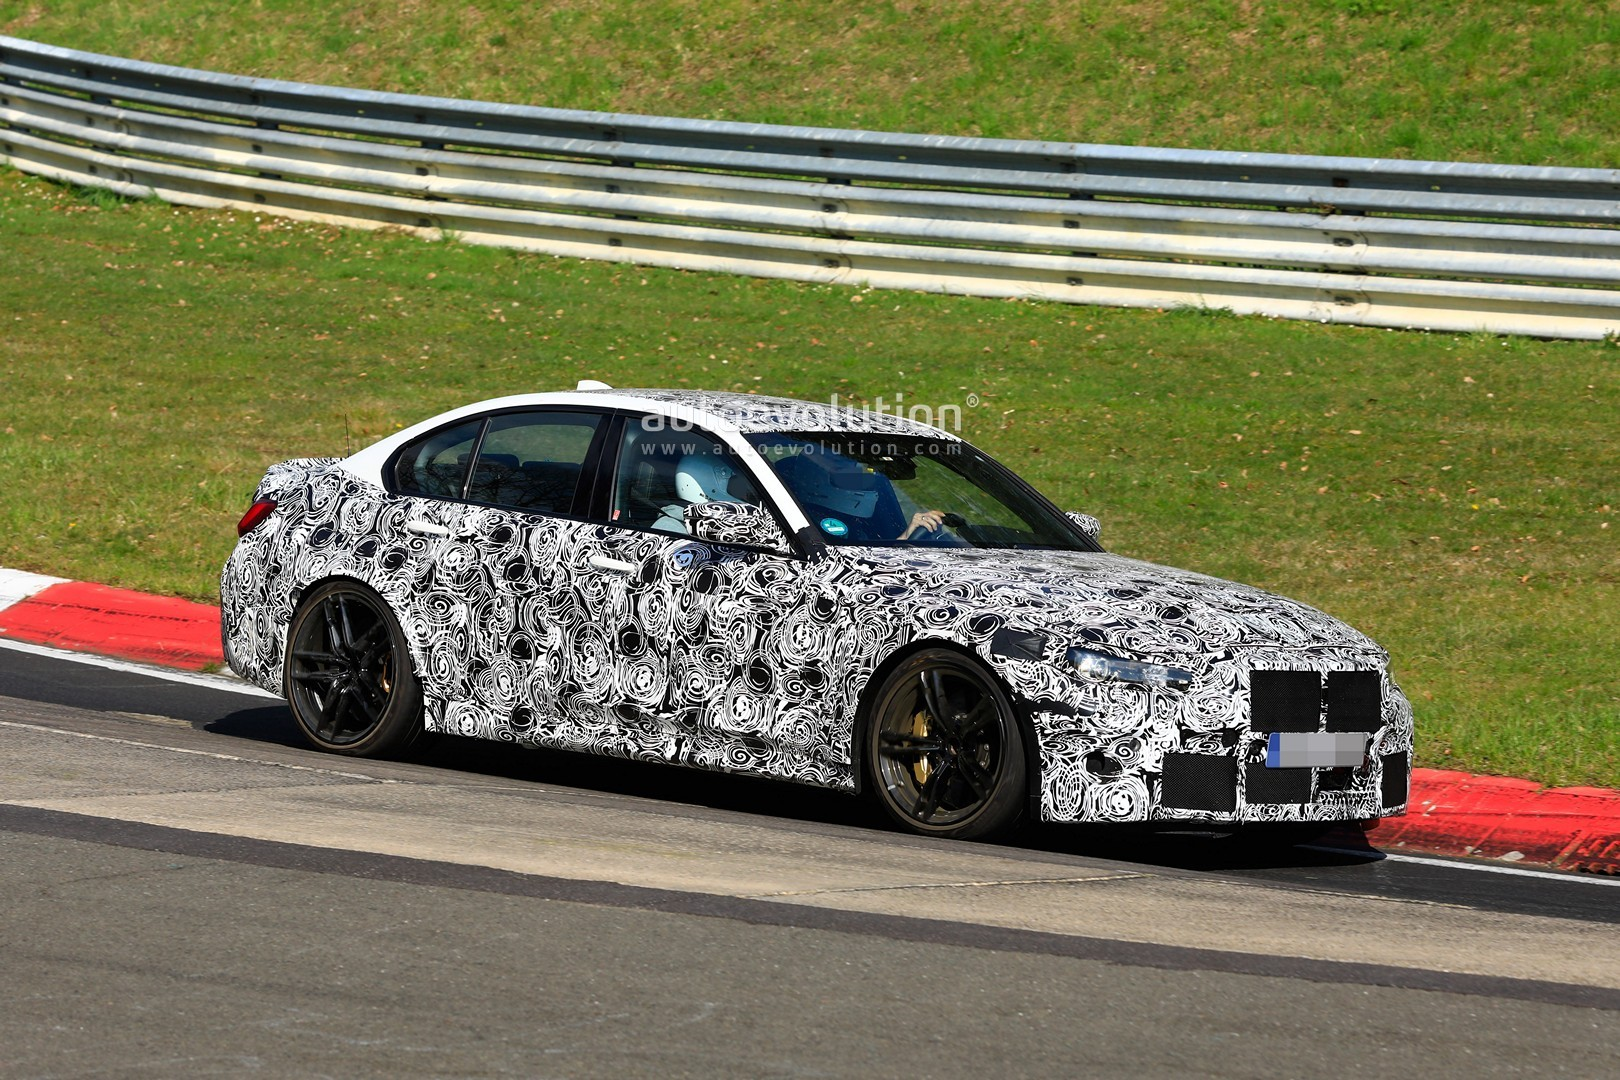 BMW Responds to Complaints About Exhaust Sound on the new M3